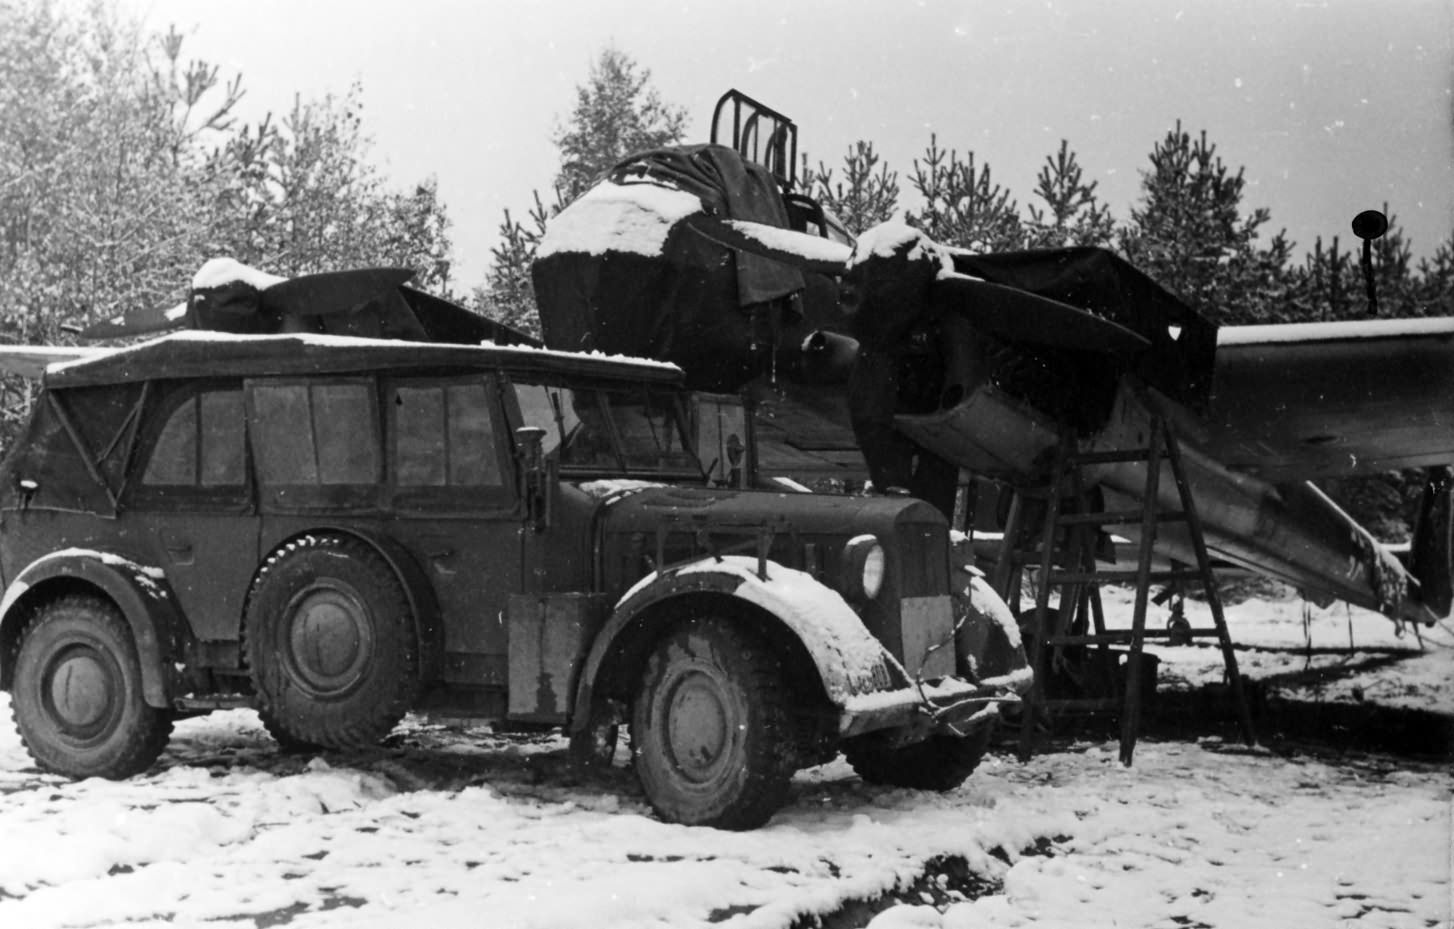 Fw 189 Uhu and Horch 901